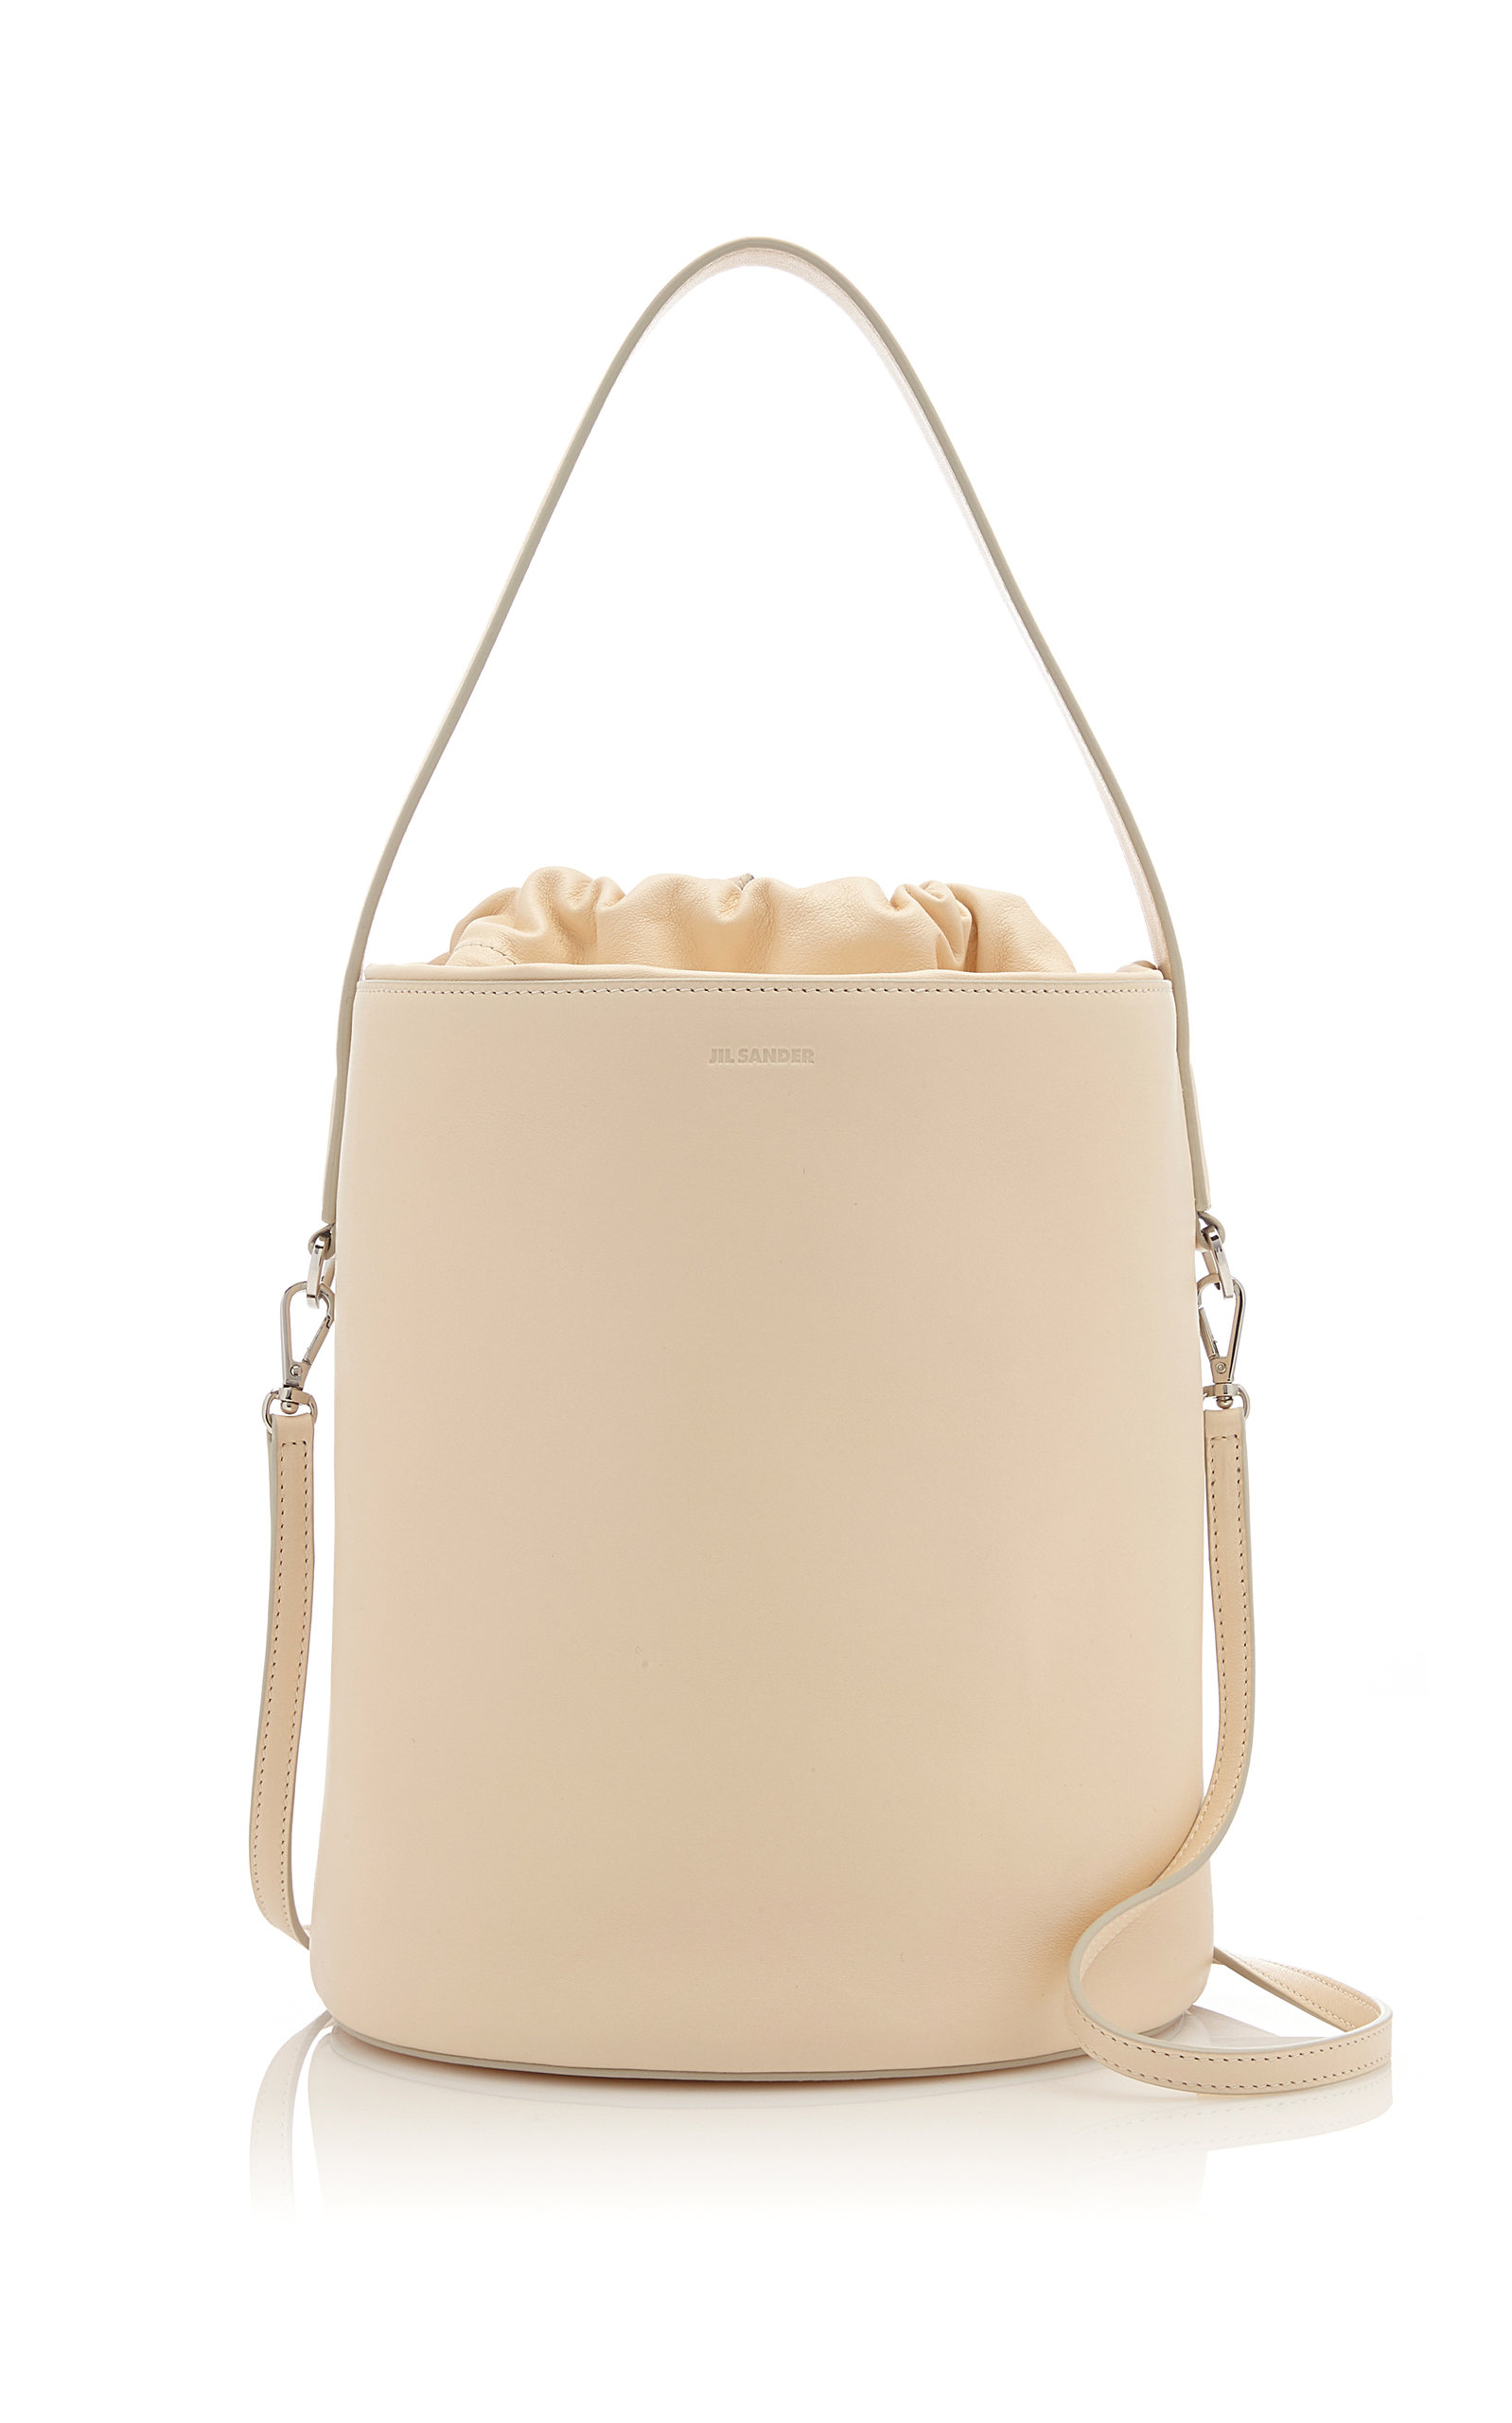 Drawket Medium Soft Leather Bag by Jil Sander  f426b021d287a